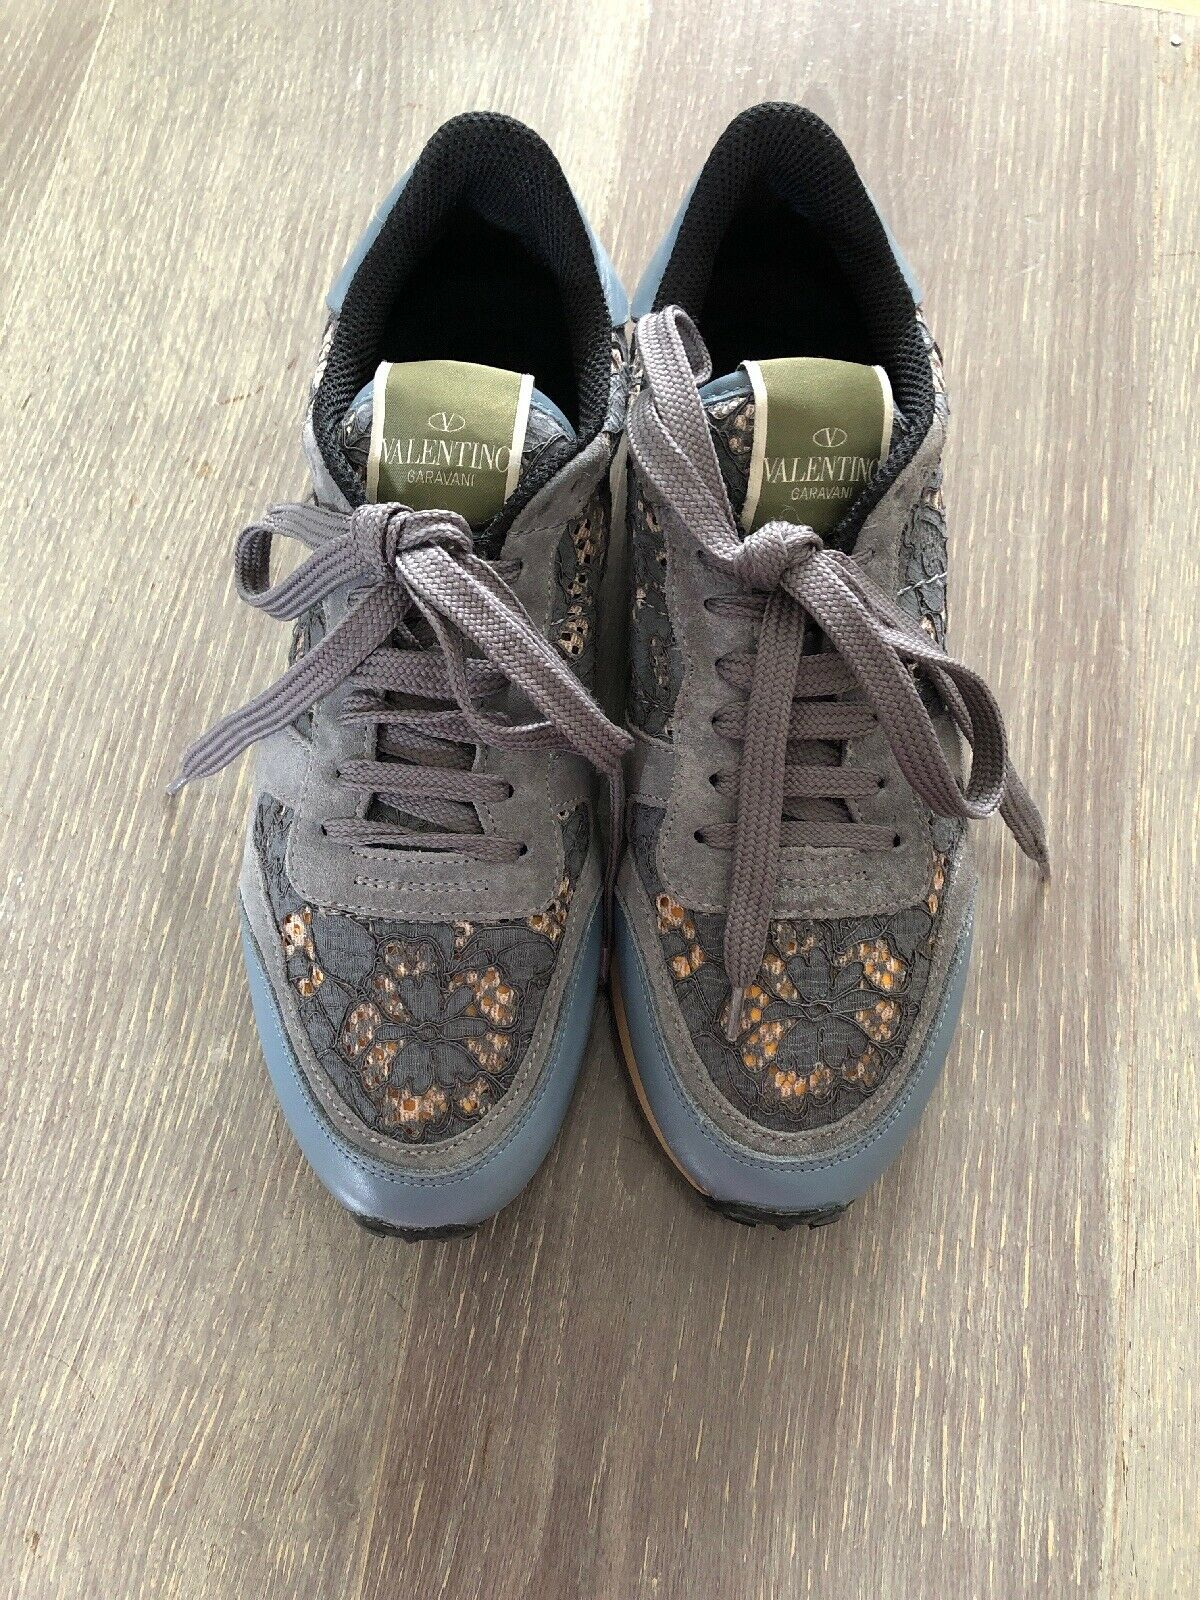 Authentic Valentino Ladies bluee Lace Trainers boots Size 38 Or 5